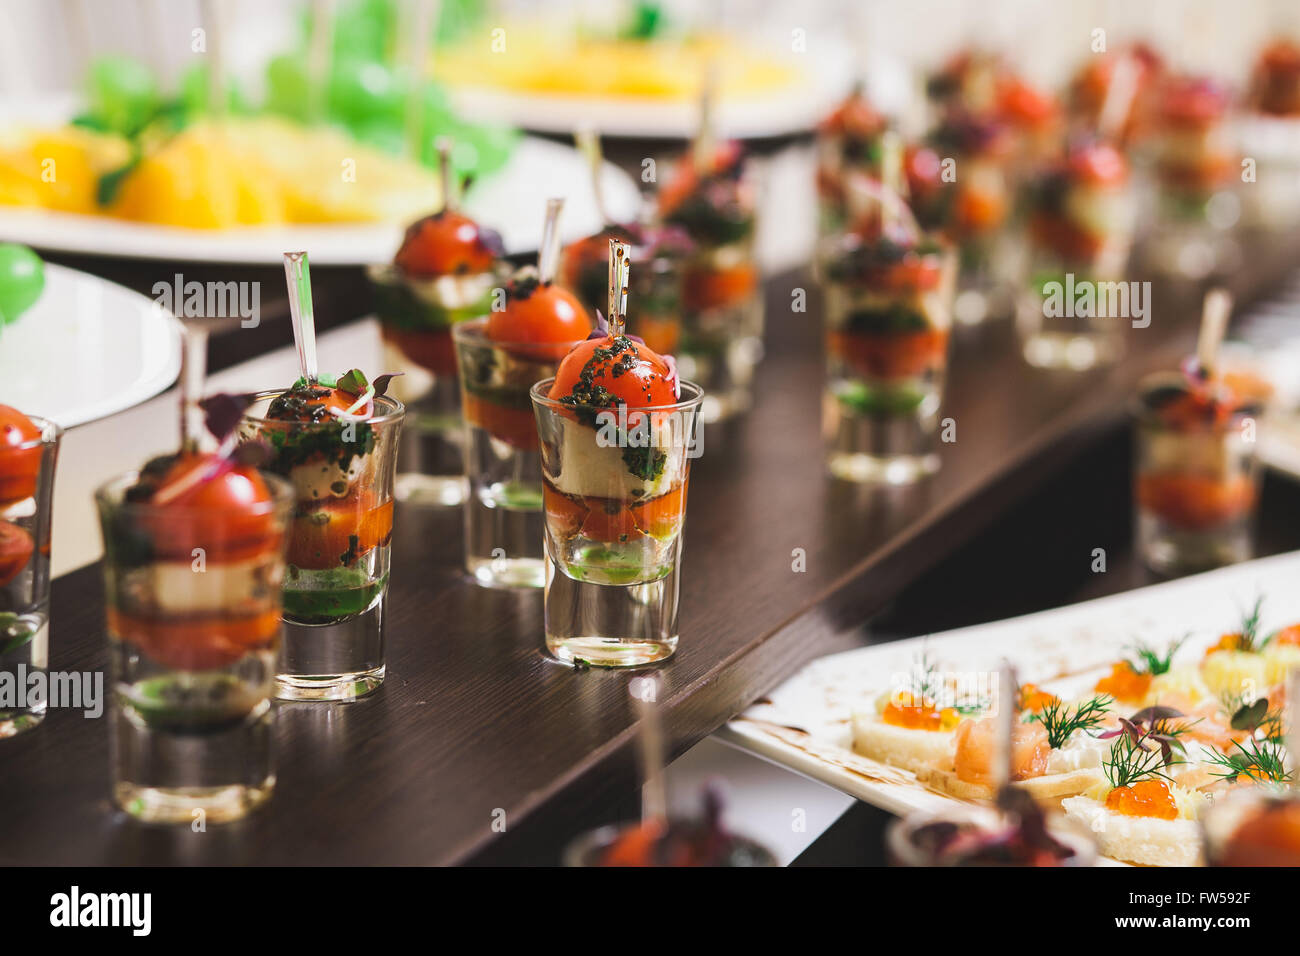 Catering for party. Close up of sandwiches, appetizers and fruit - Stock Image